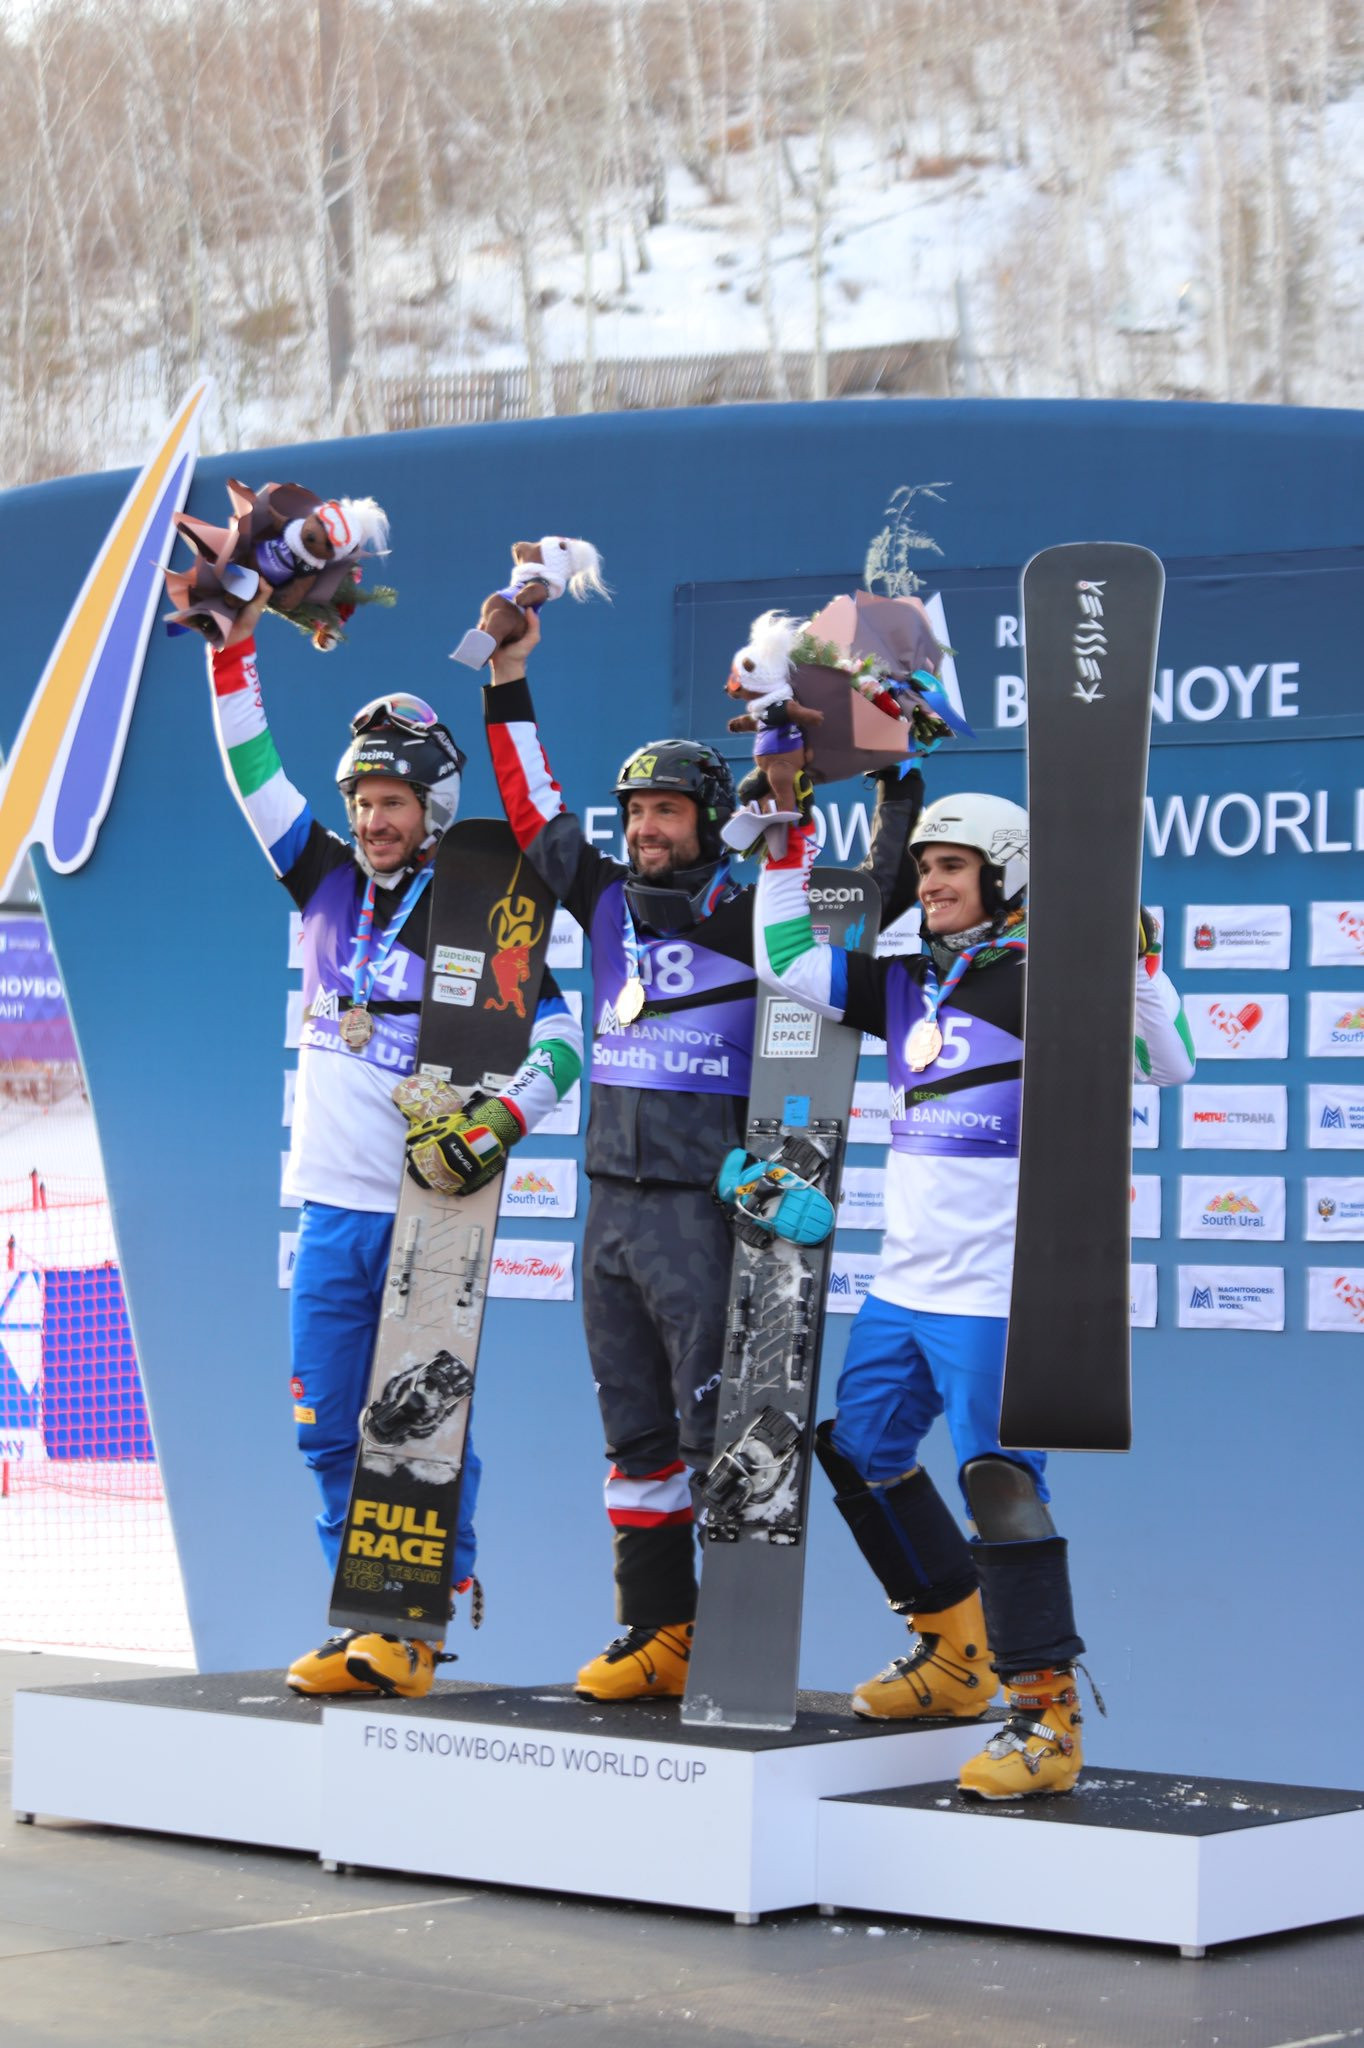 Zogg and Prommegger enjoy parallel slalom wins at FIS Alpine Snowboard World Cup